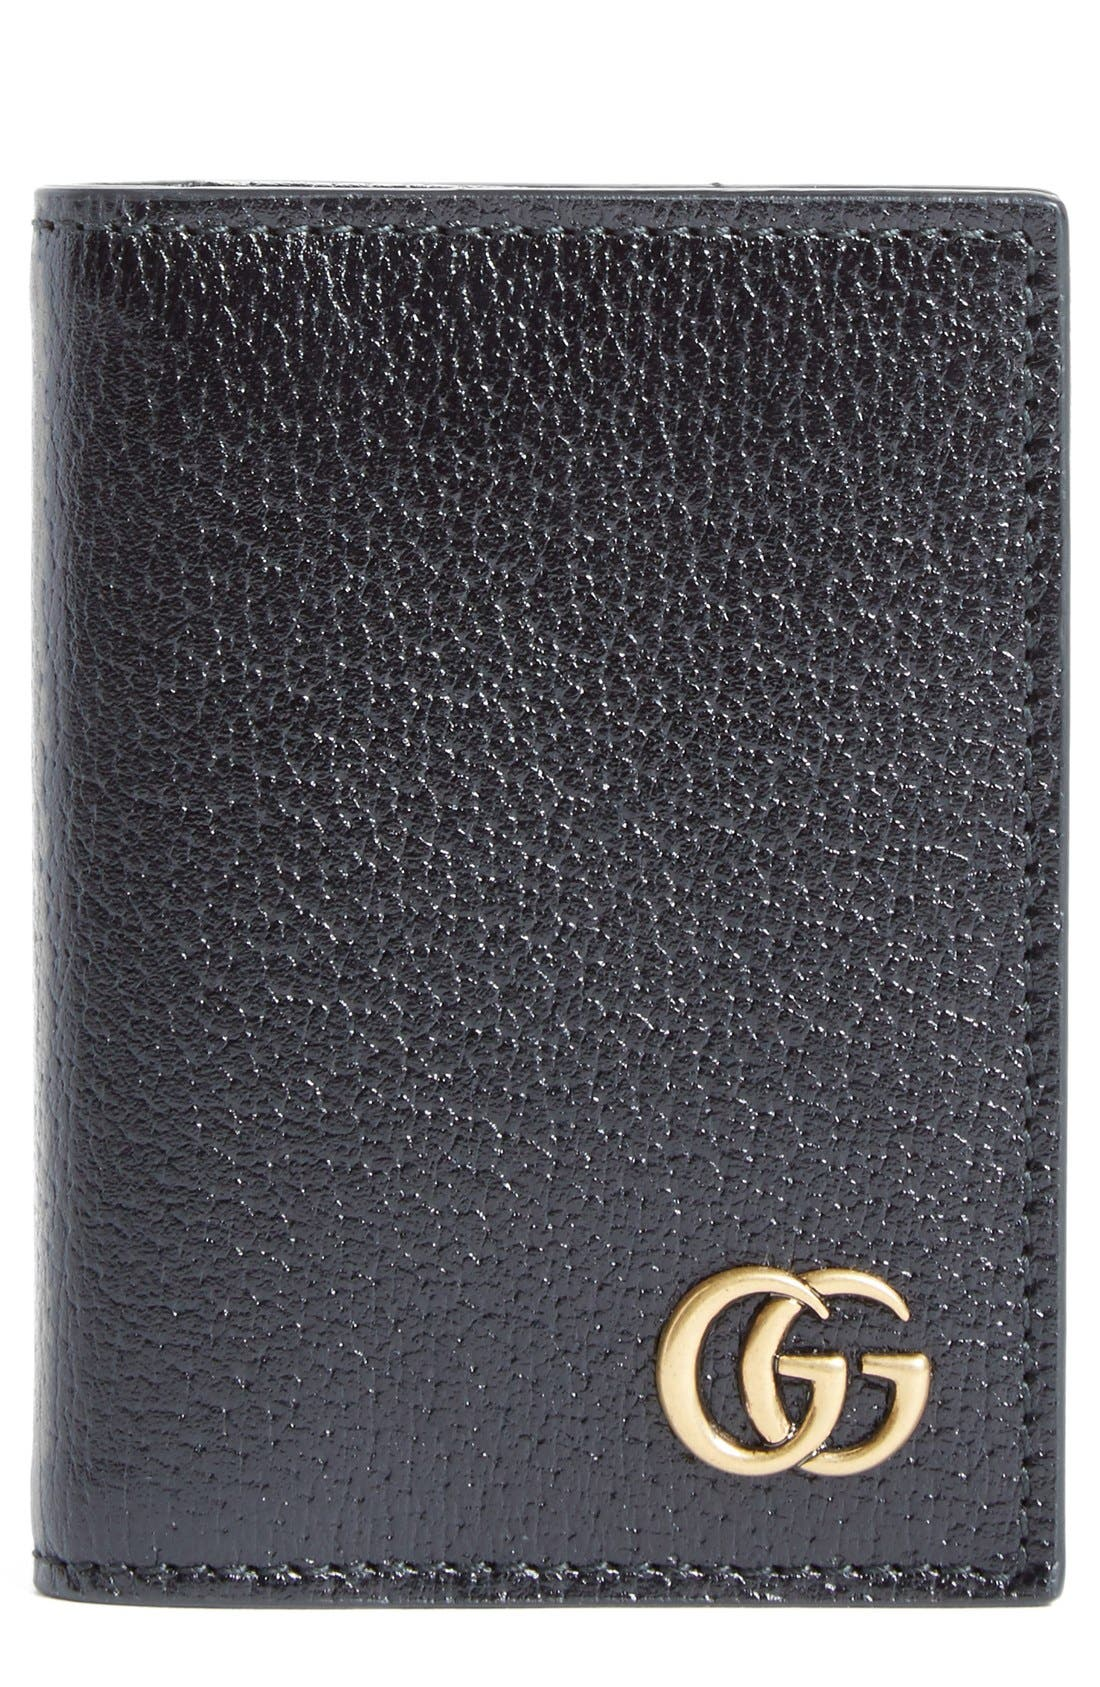 Gucci Marmont Leather Card Case